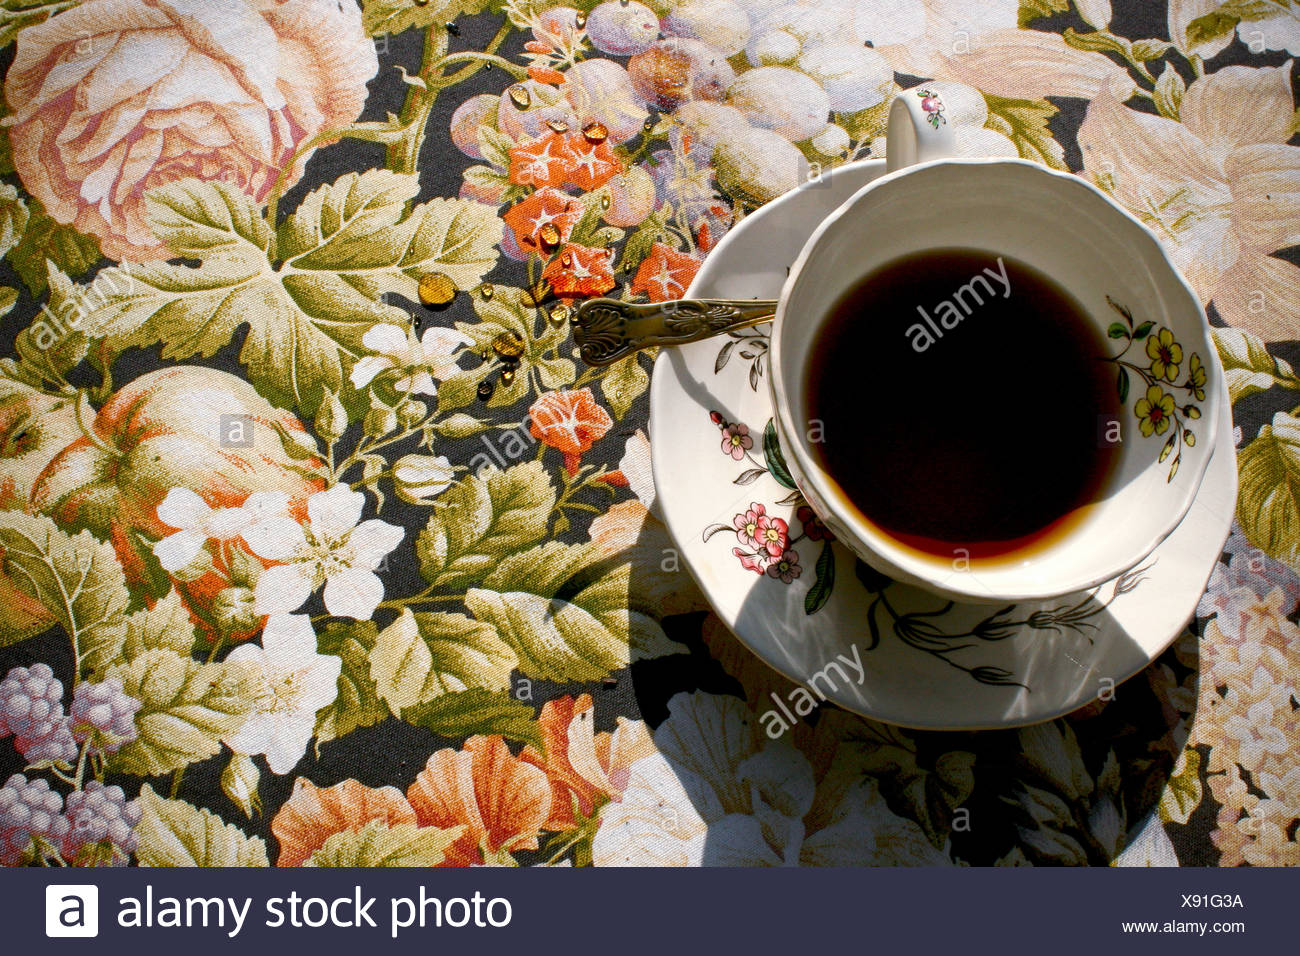 Teacup and saucer on floral tablecloth - Stock Image